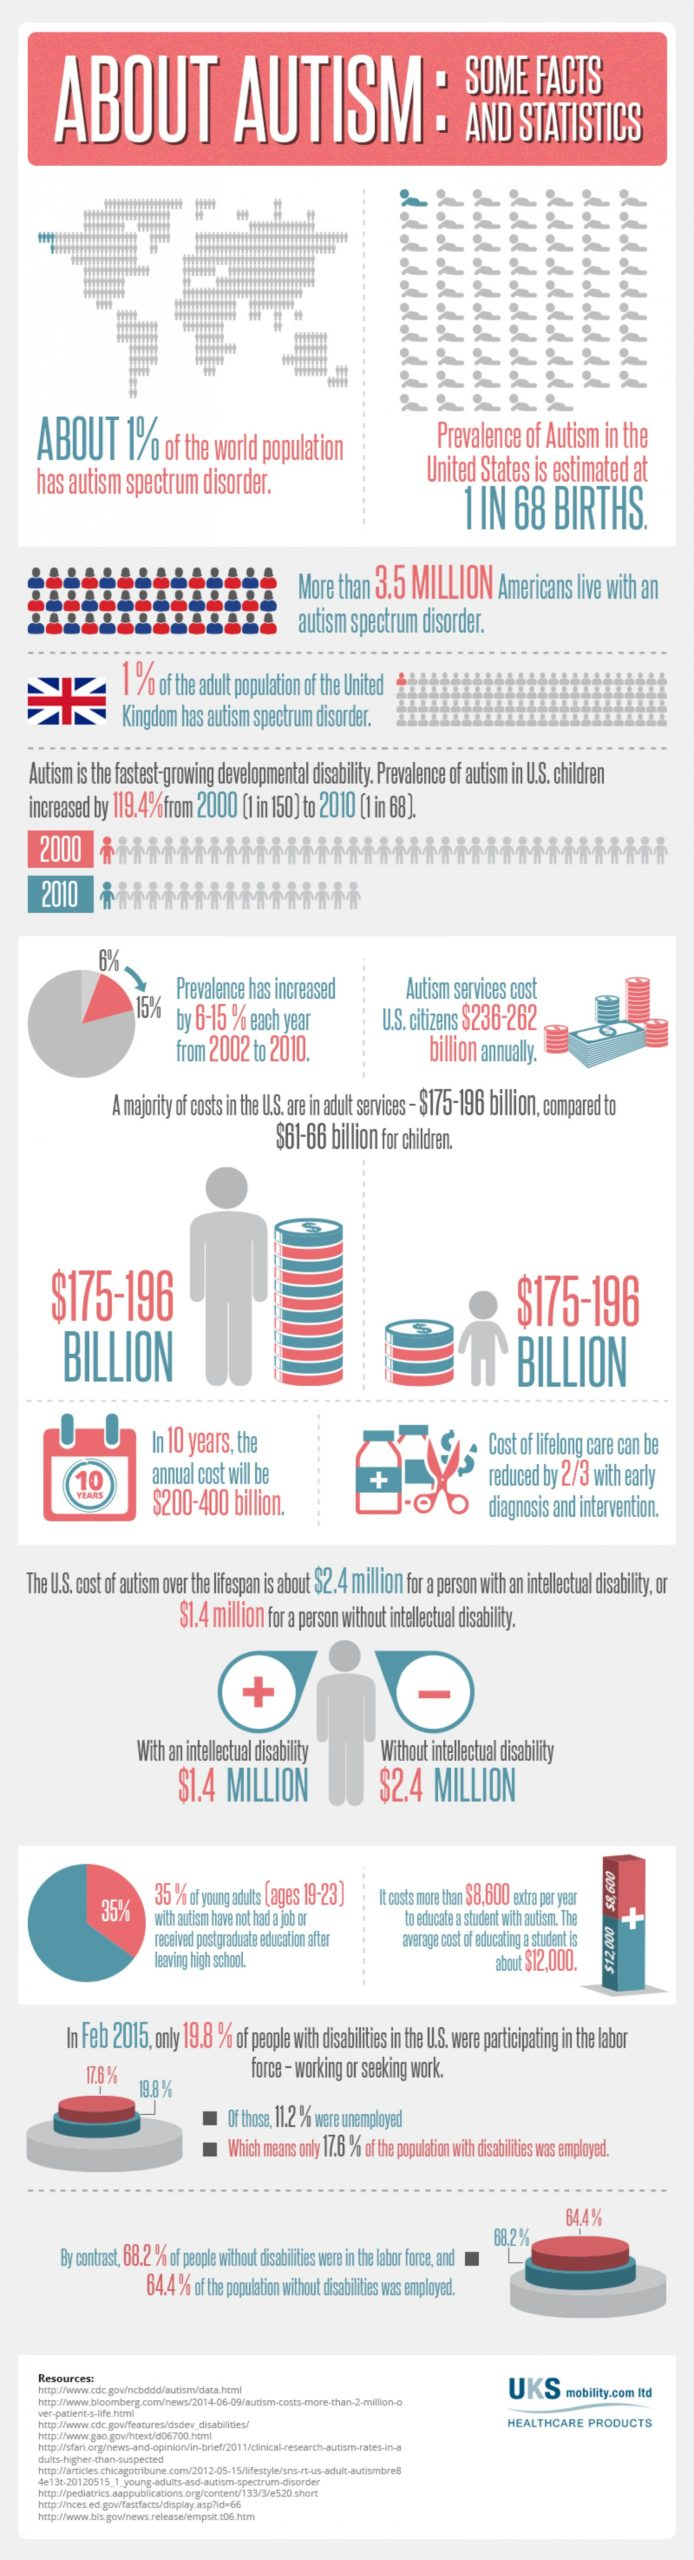 autism-interesting-facts-and-statistics_5501a401c8802_w1500